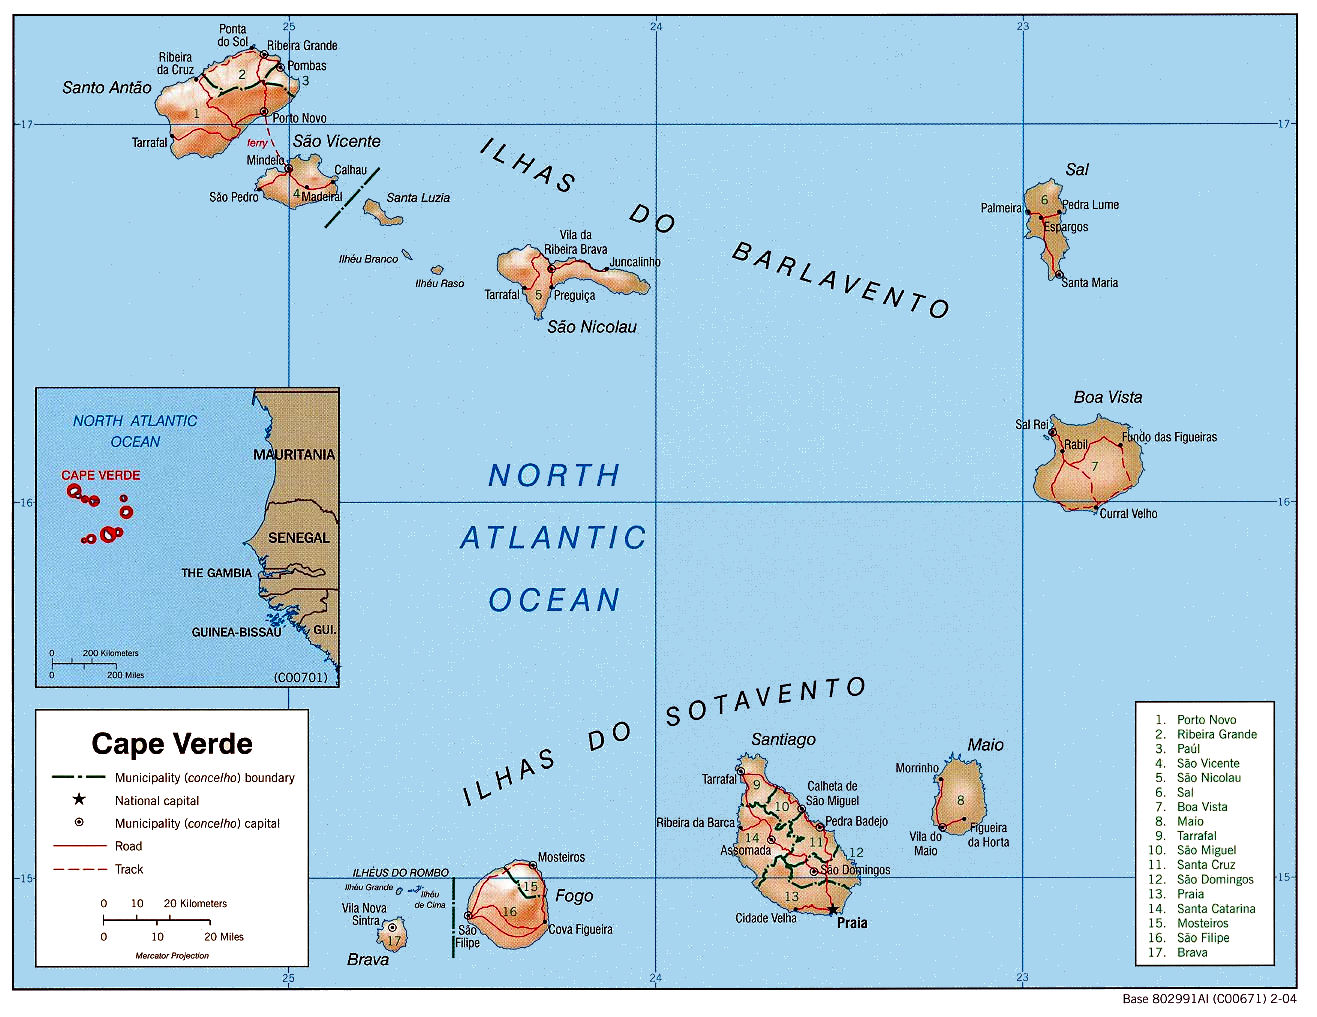 cape verde map cape verde location on the africa map cape verde